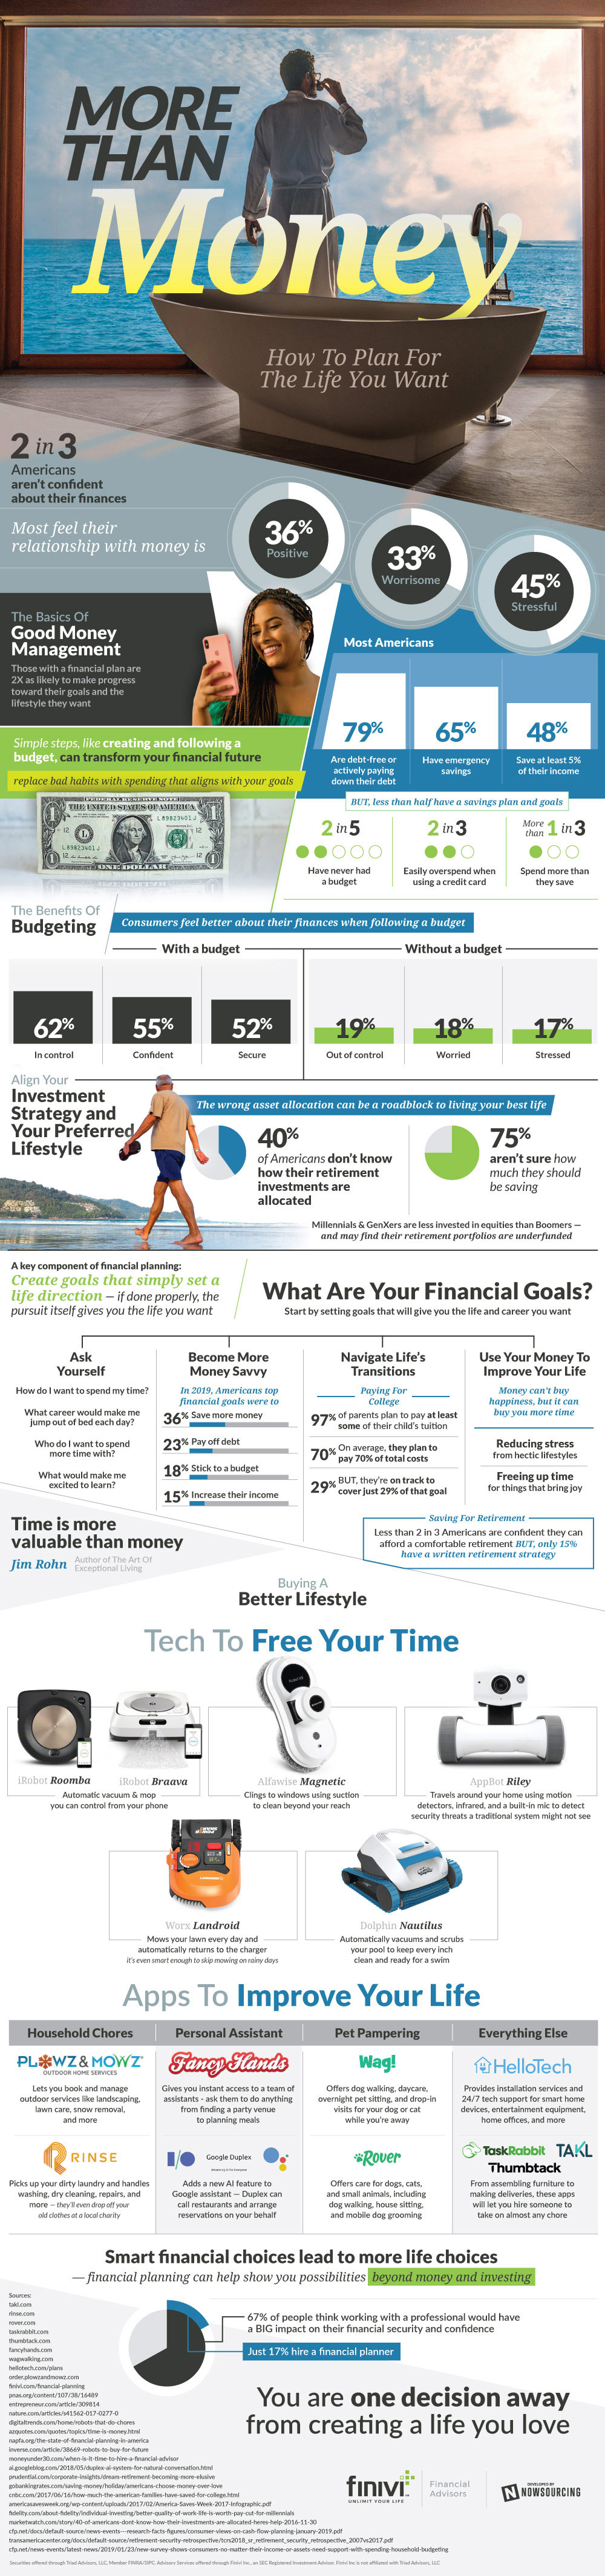 Money Management: Tips and Benefits [Infographic]